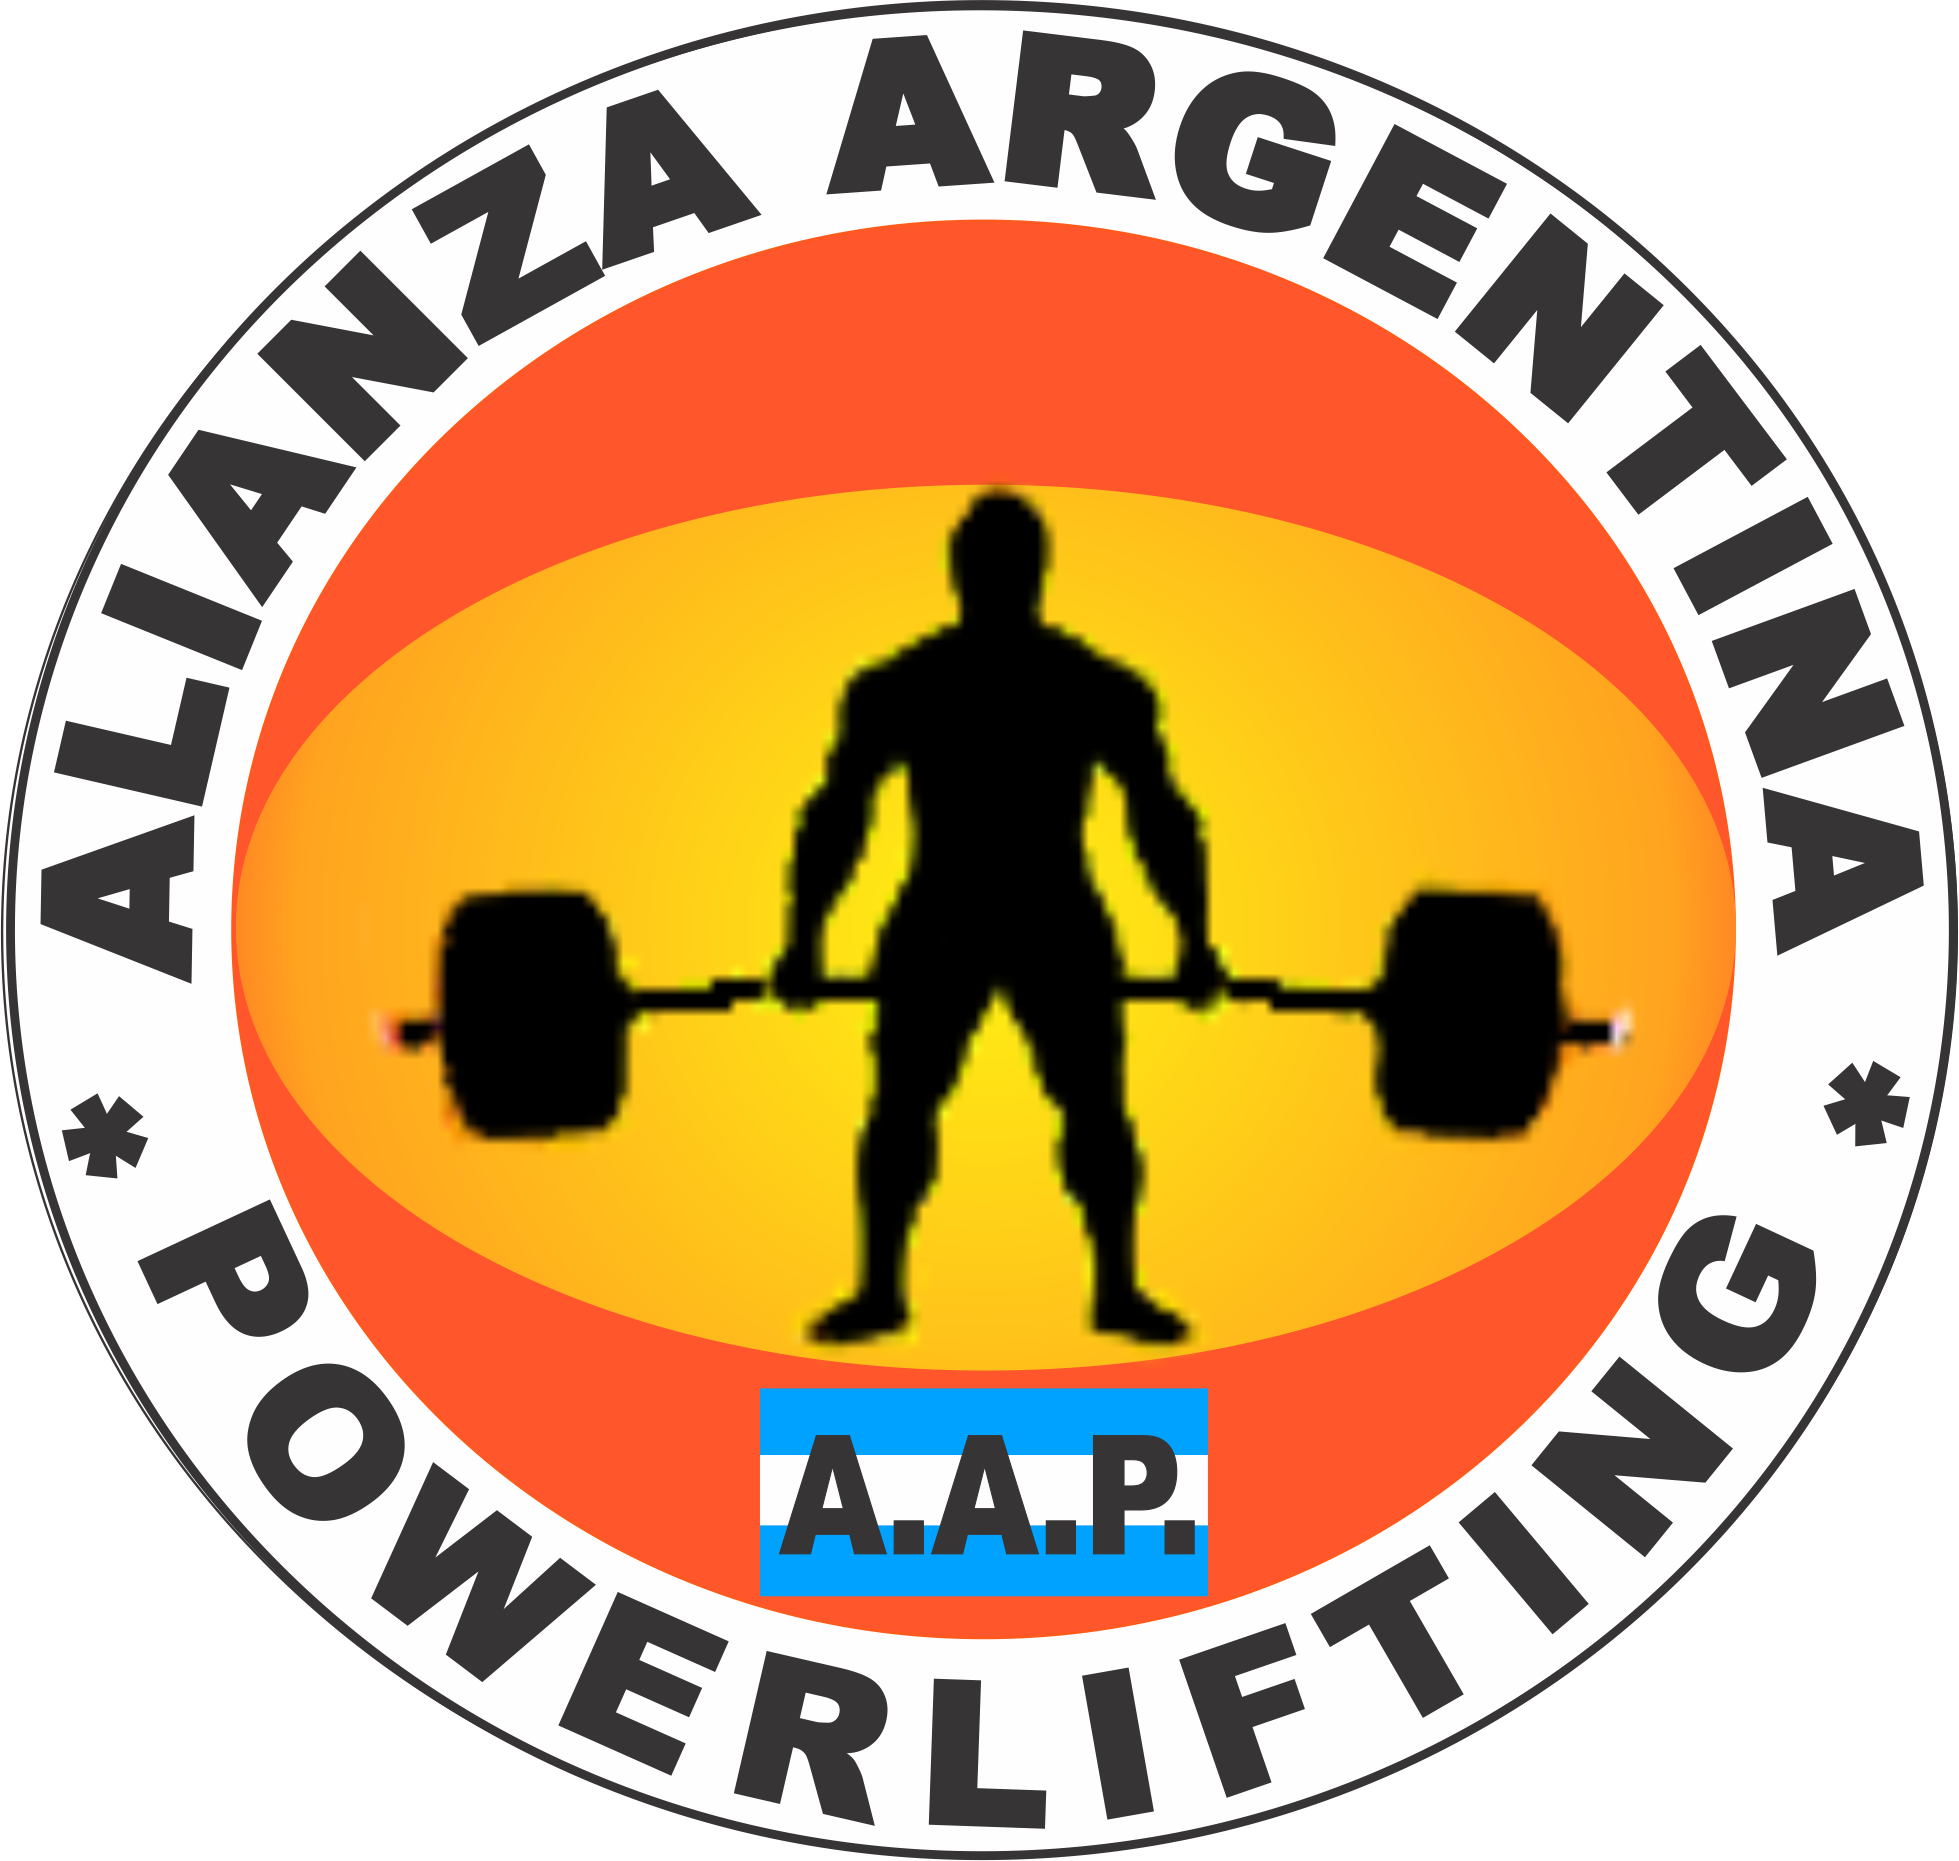 Weight clipart powerlifter. Xpc powerlifting aap